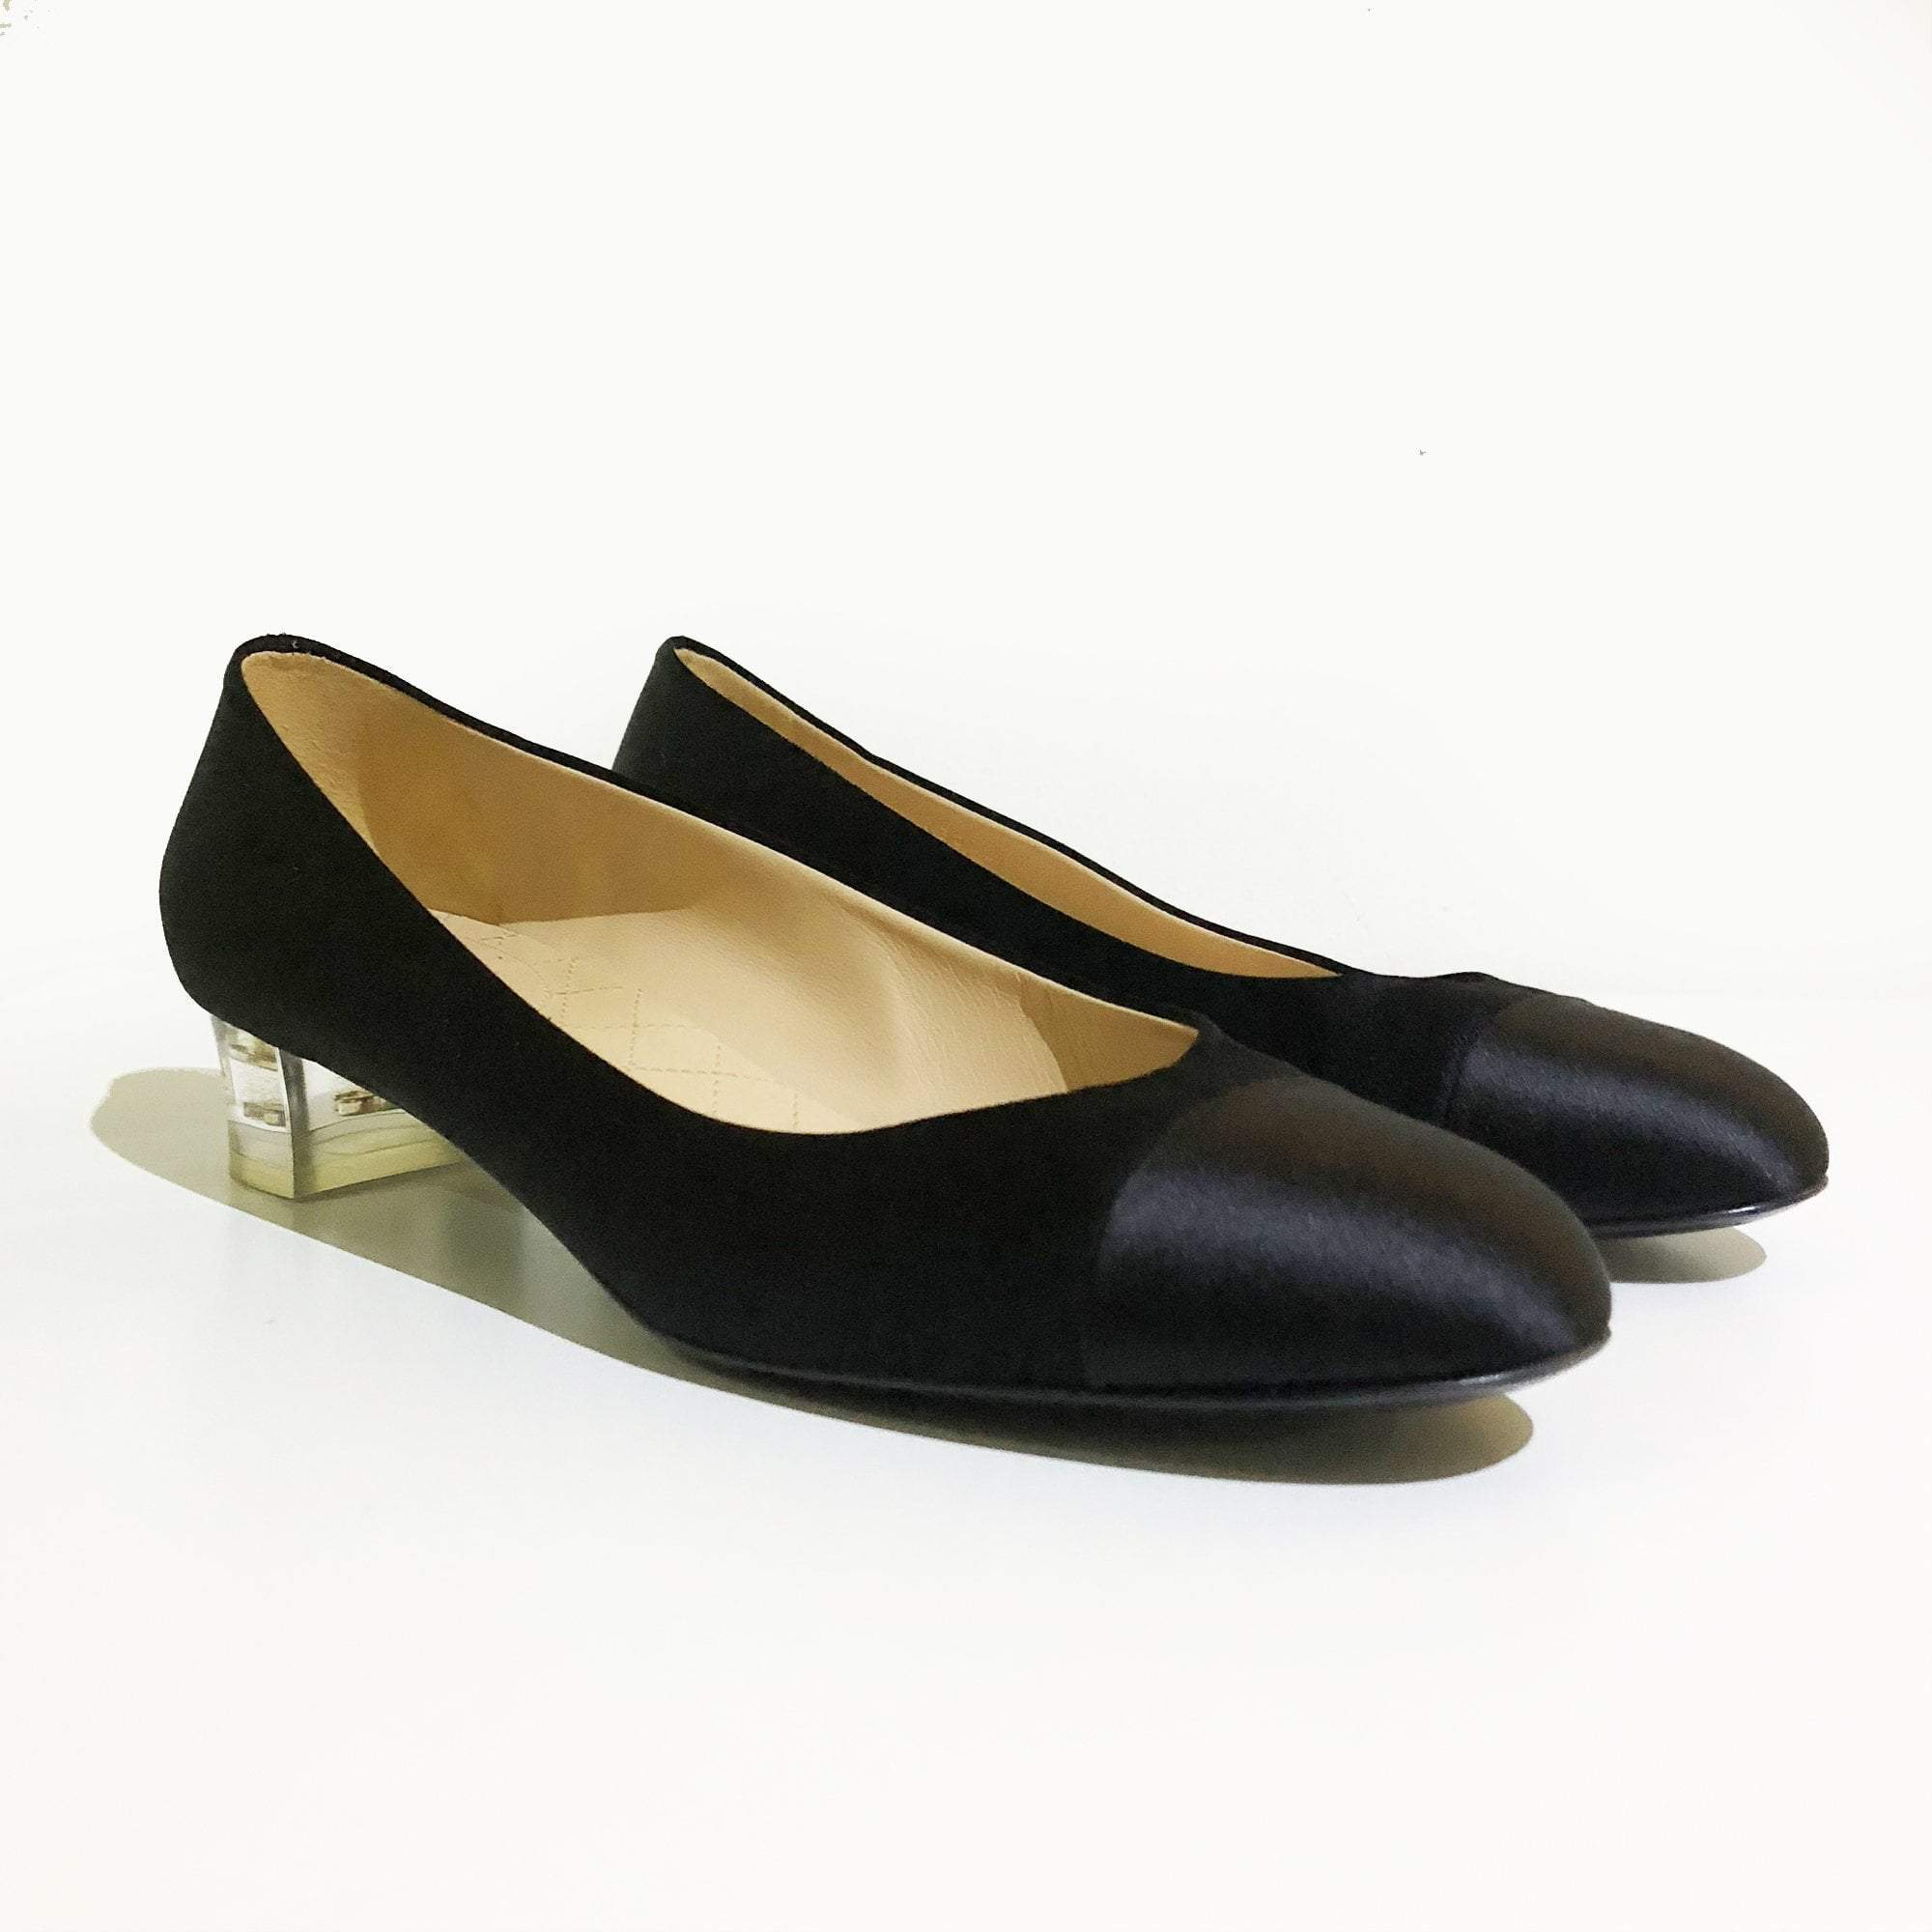 Chanel Black Satin Cap-toe Pumps